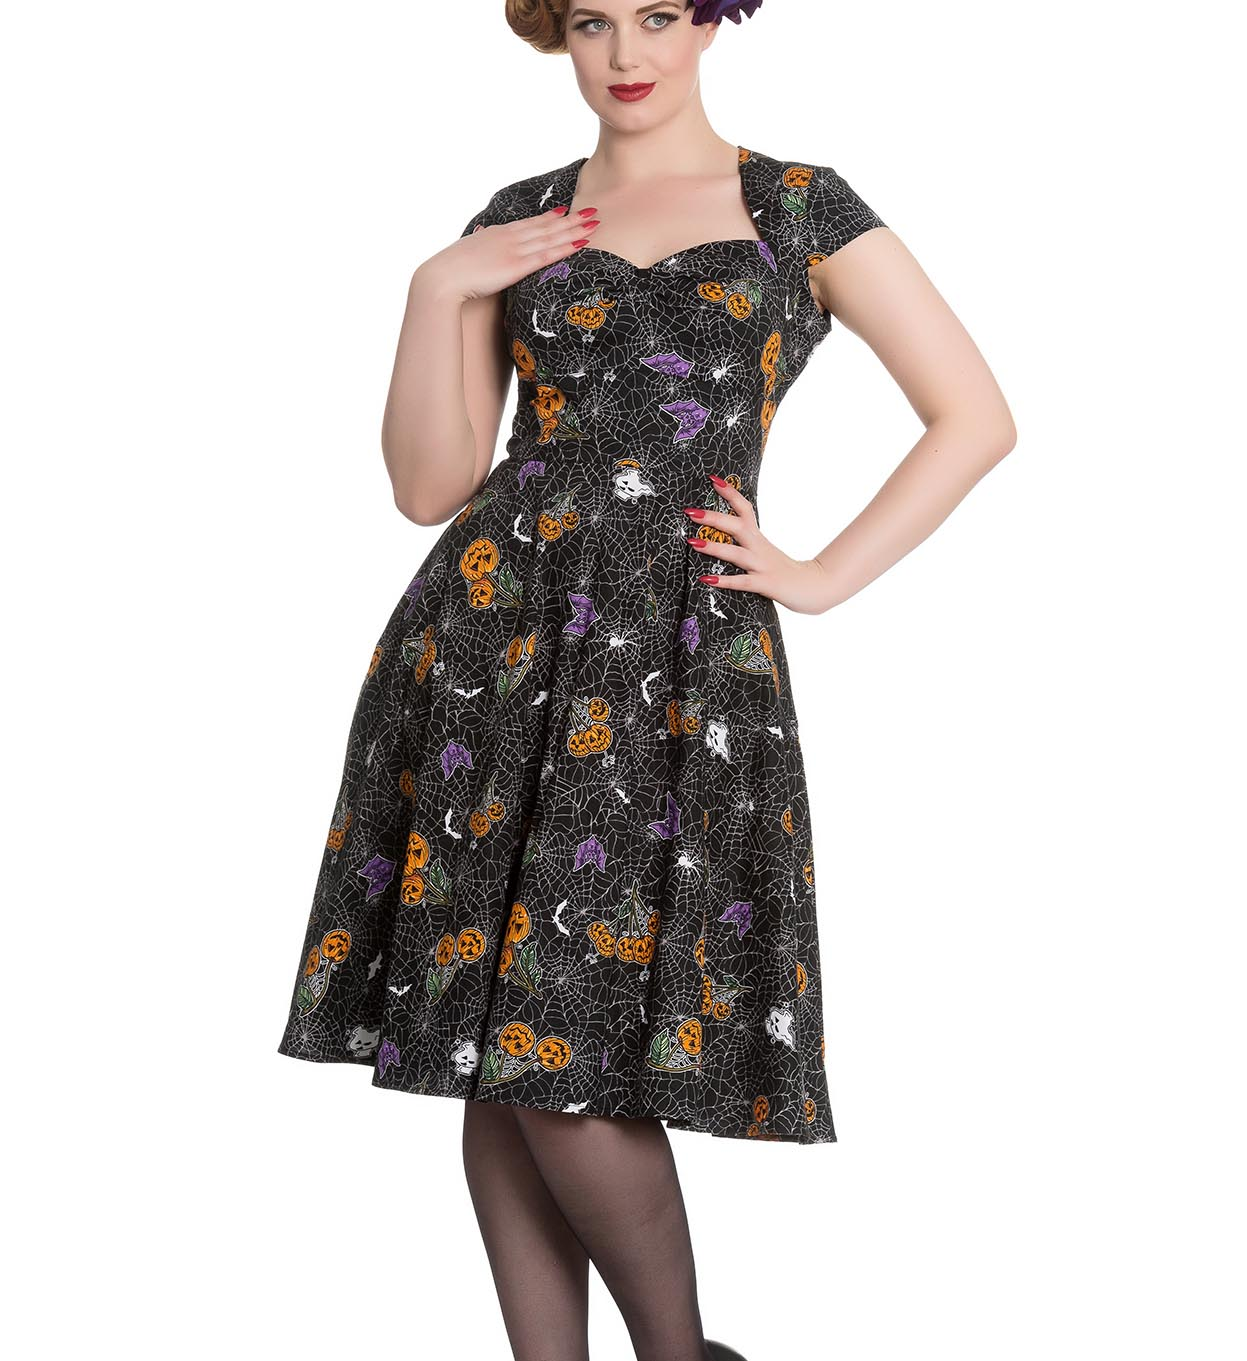 Hell-Bunny-Black-Pinup-50s-Goth-Webs-Dress-HARLOW-Halloween-All-Sizes thumbnail 23